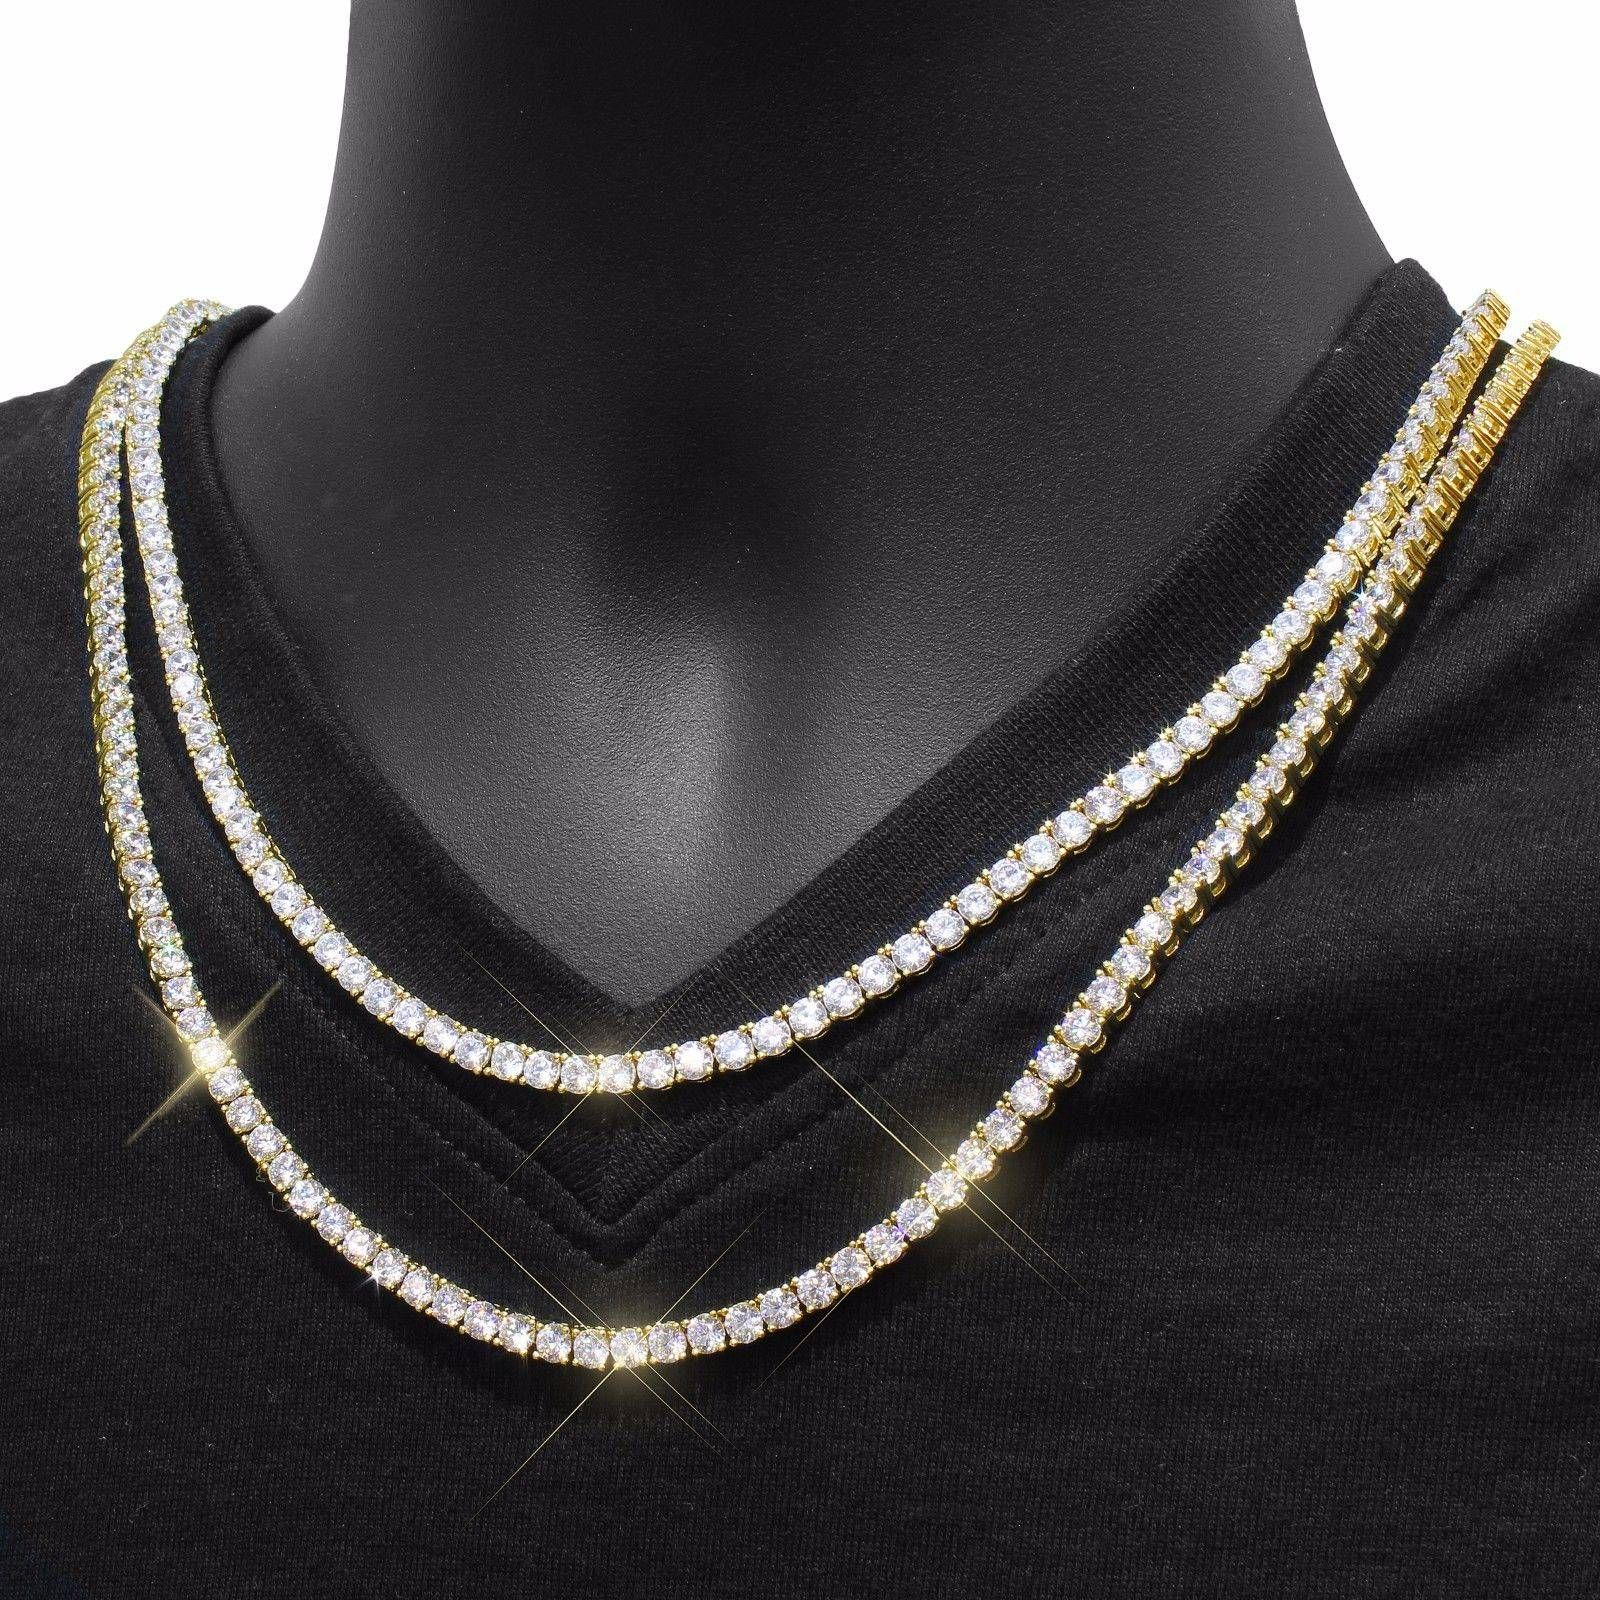 0520e6c29b25b2 nice Mens Tennis Necklace Choker Chain 14ok Gold End 3mm Lab Diamond  18